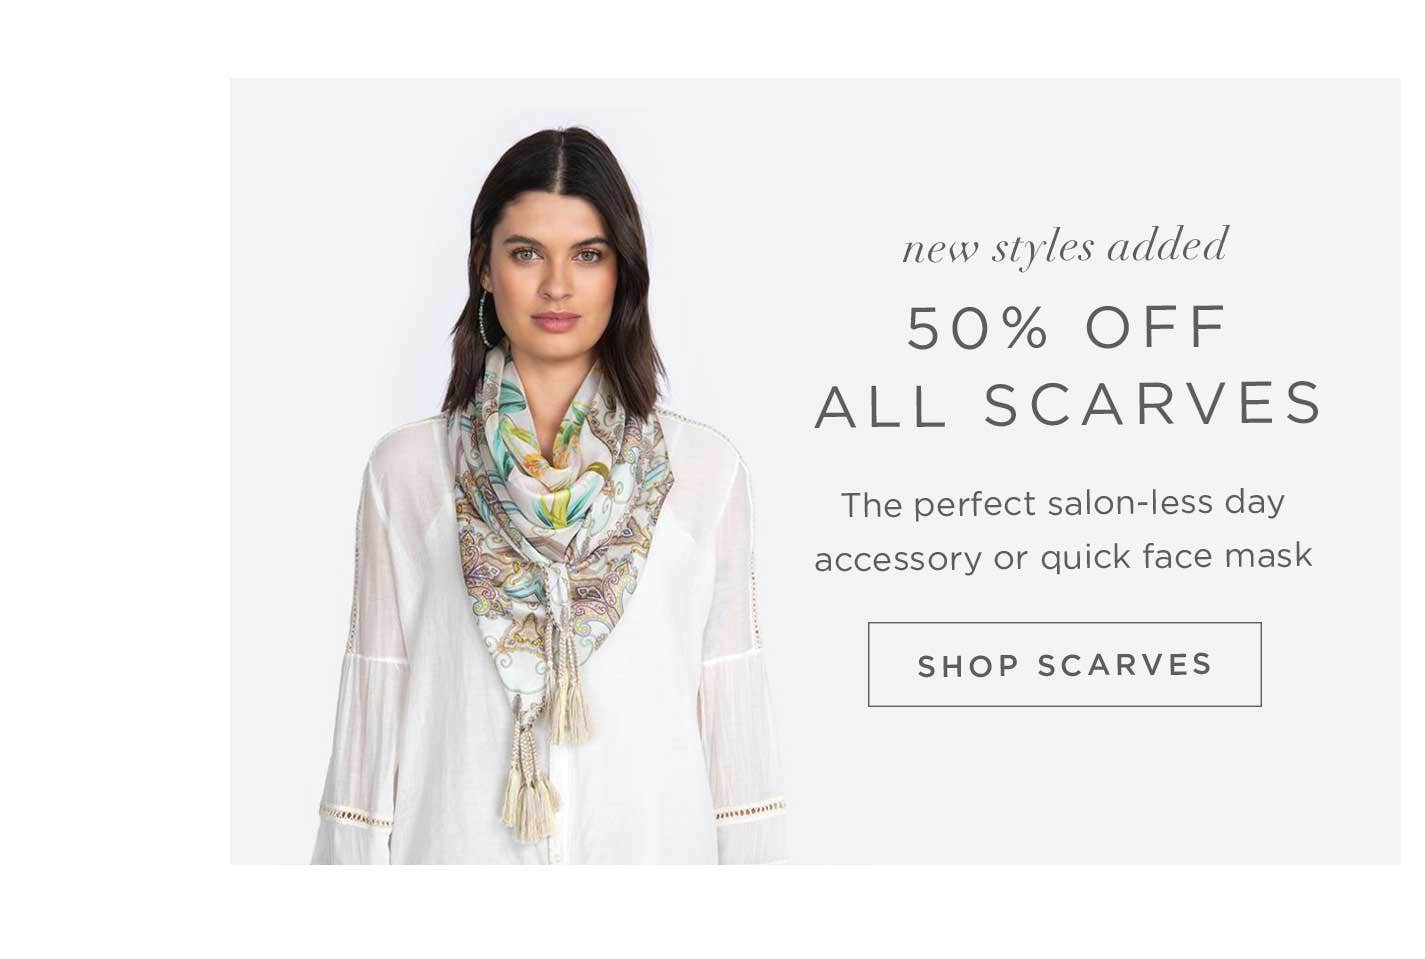 New Styles Added - 50% off all Scarves - The Perfect Salon-less day Accessory or Quick Face Mask - Shop Scarves